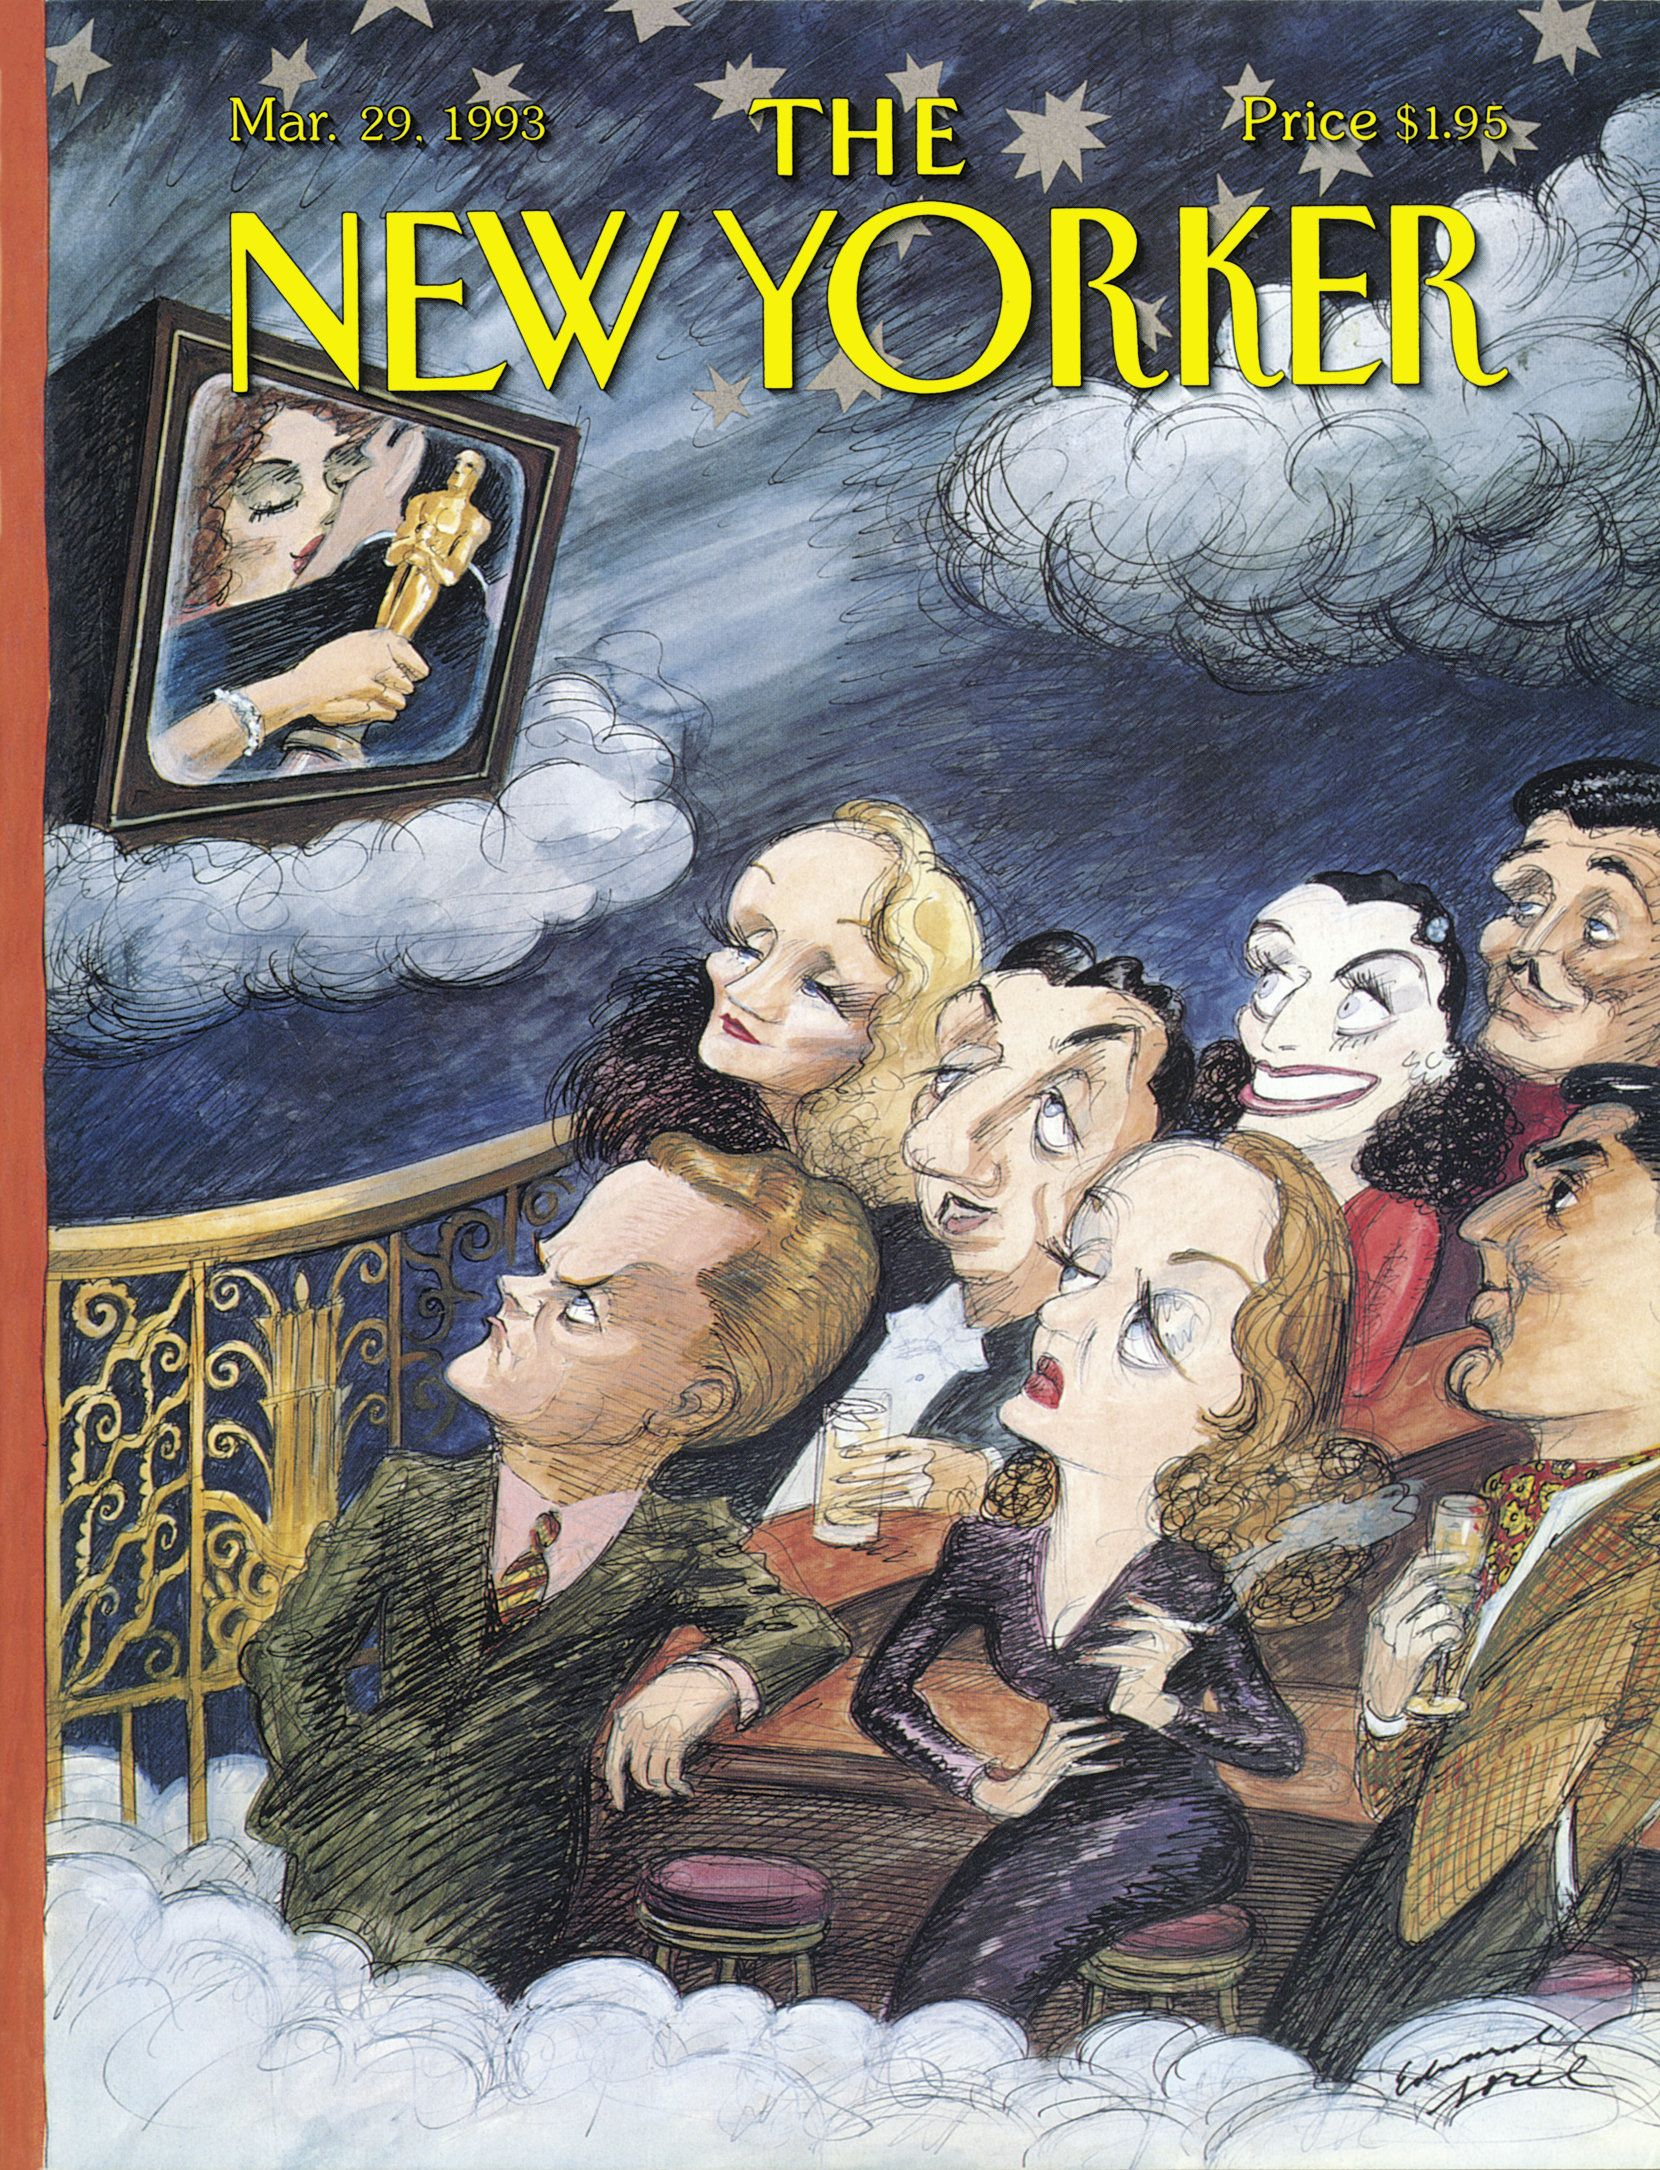 """00ccb8929 The New Yorker - Monday, March 29, 1993 - Issue # 3553 - Vol. 69 - N° 6 -  Cover """"Starry Night"""" by Edward Sorel"""